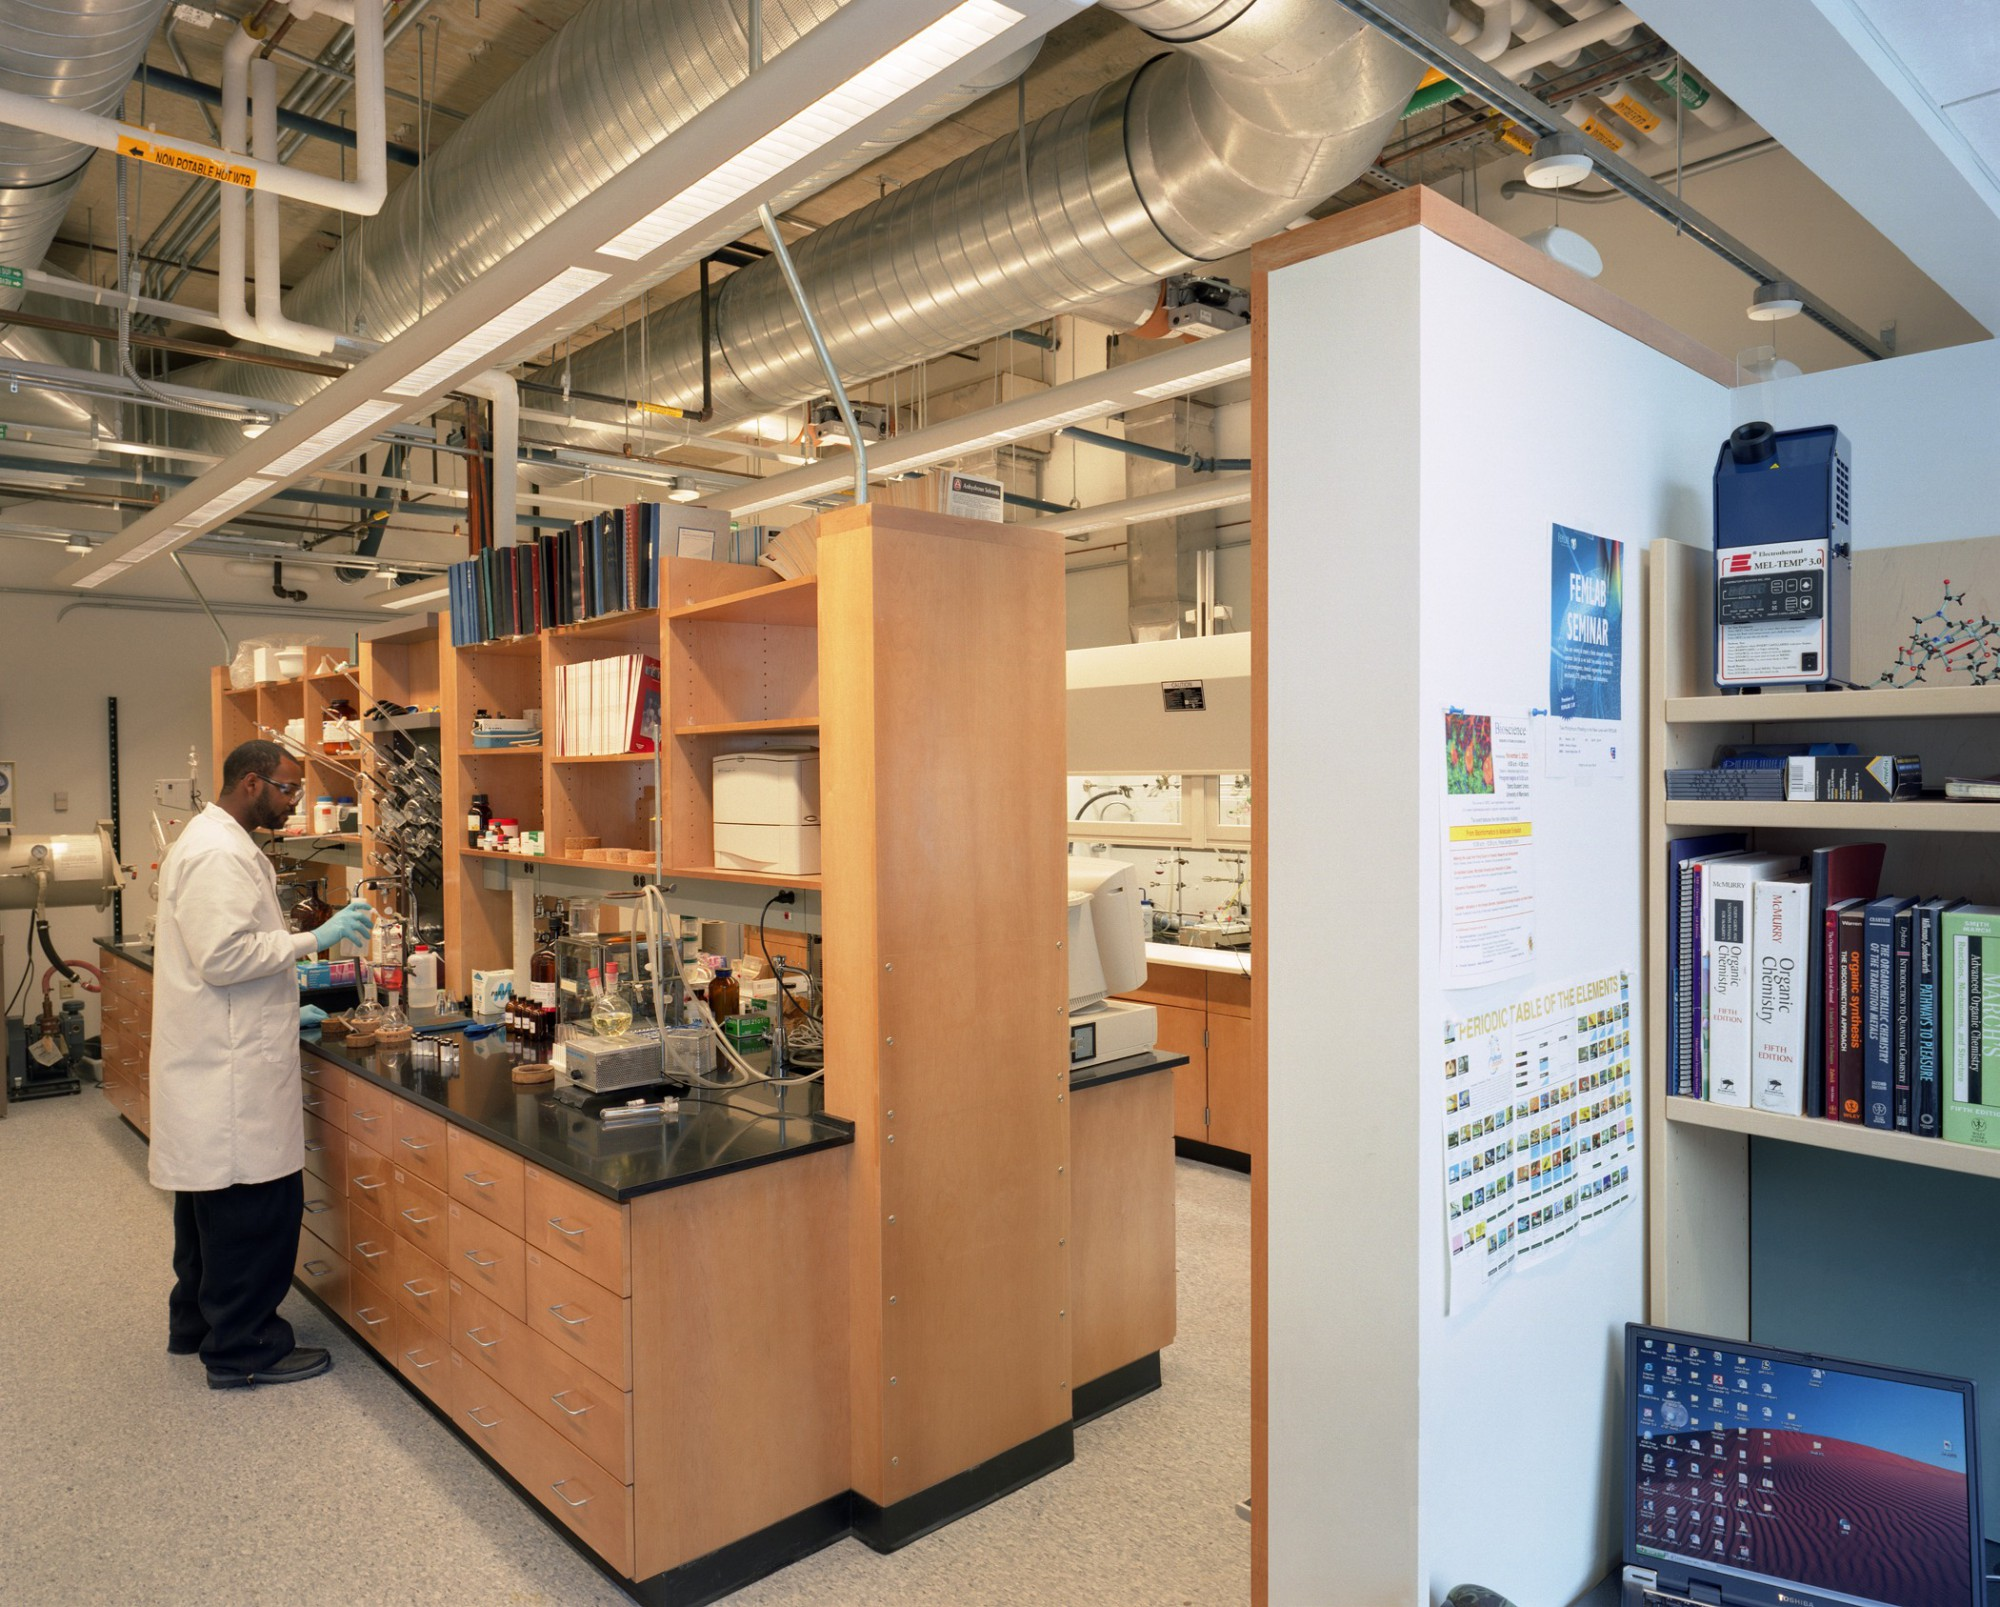 University of maryland college park chemistry building - University of maryland interior design ...